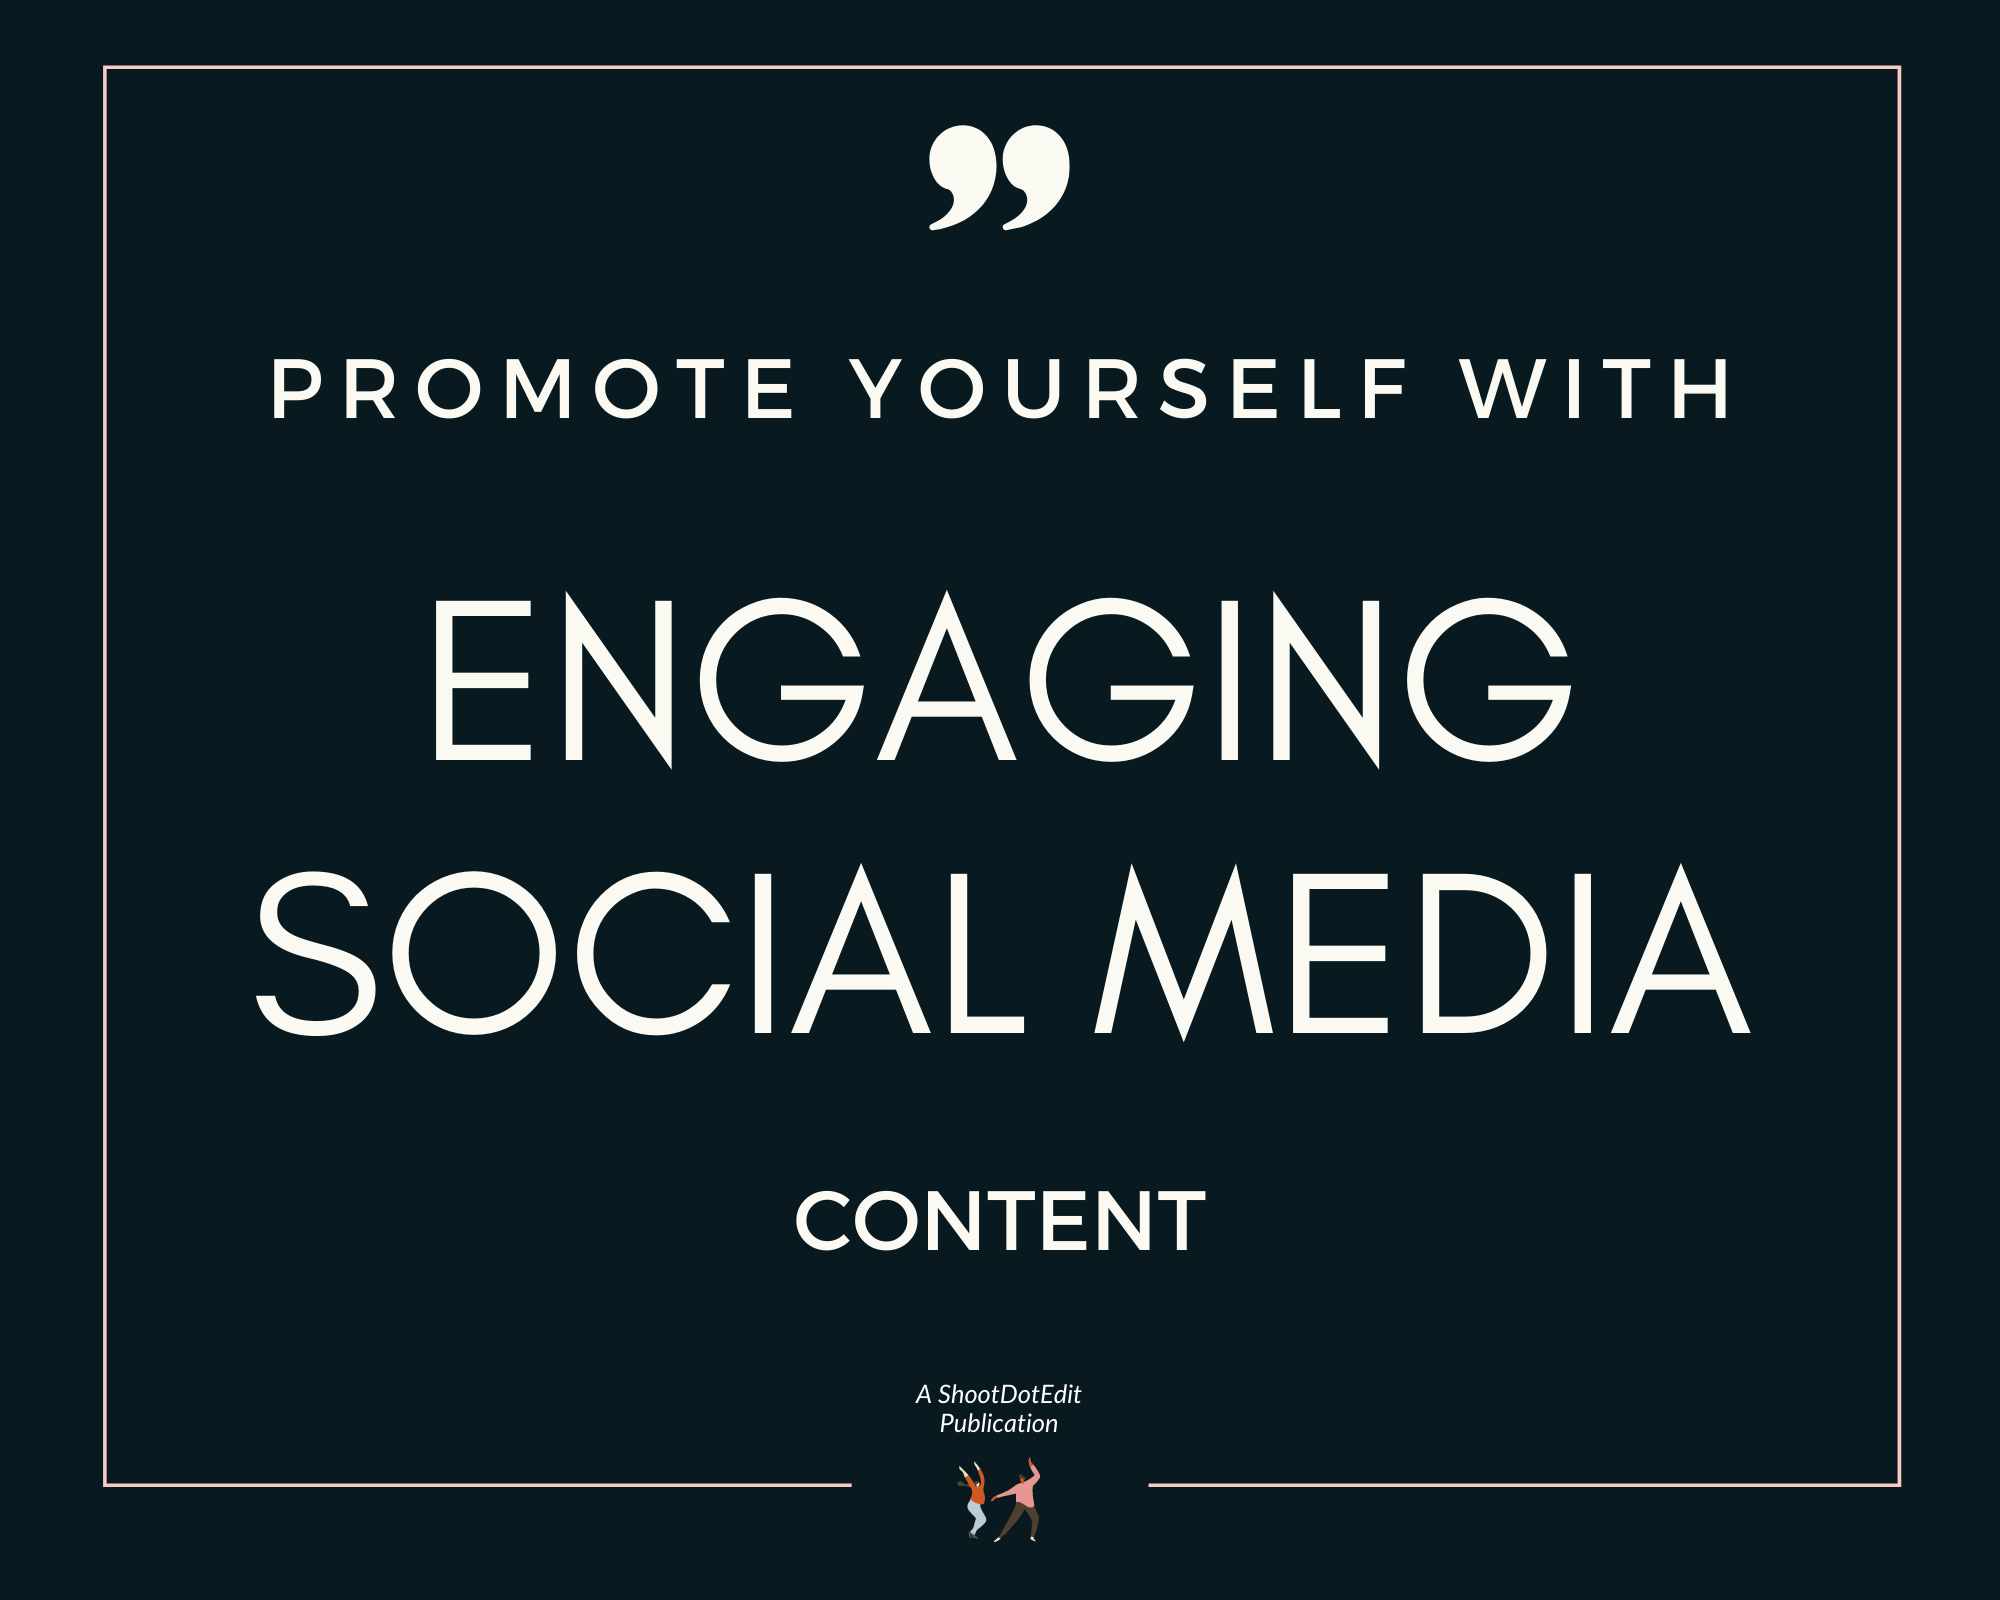 Infographic stating promote yourself with engaging social media content